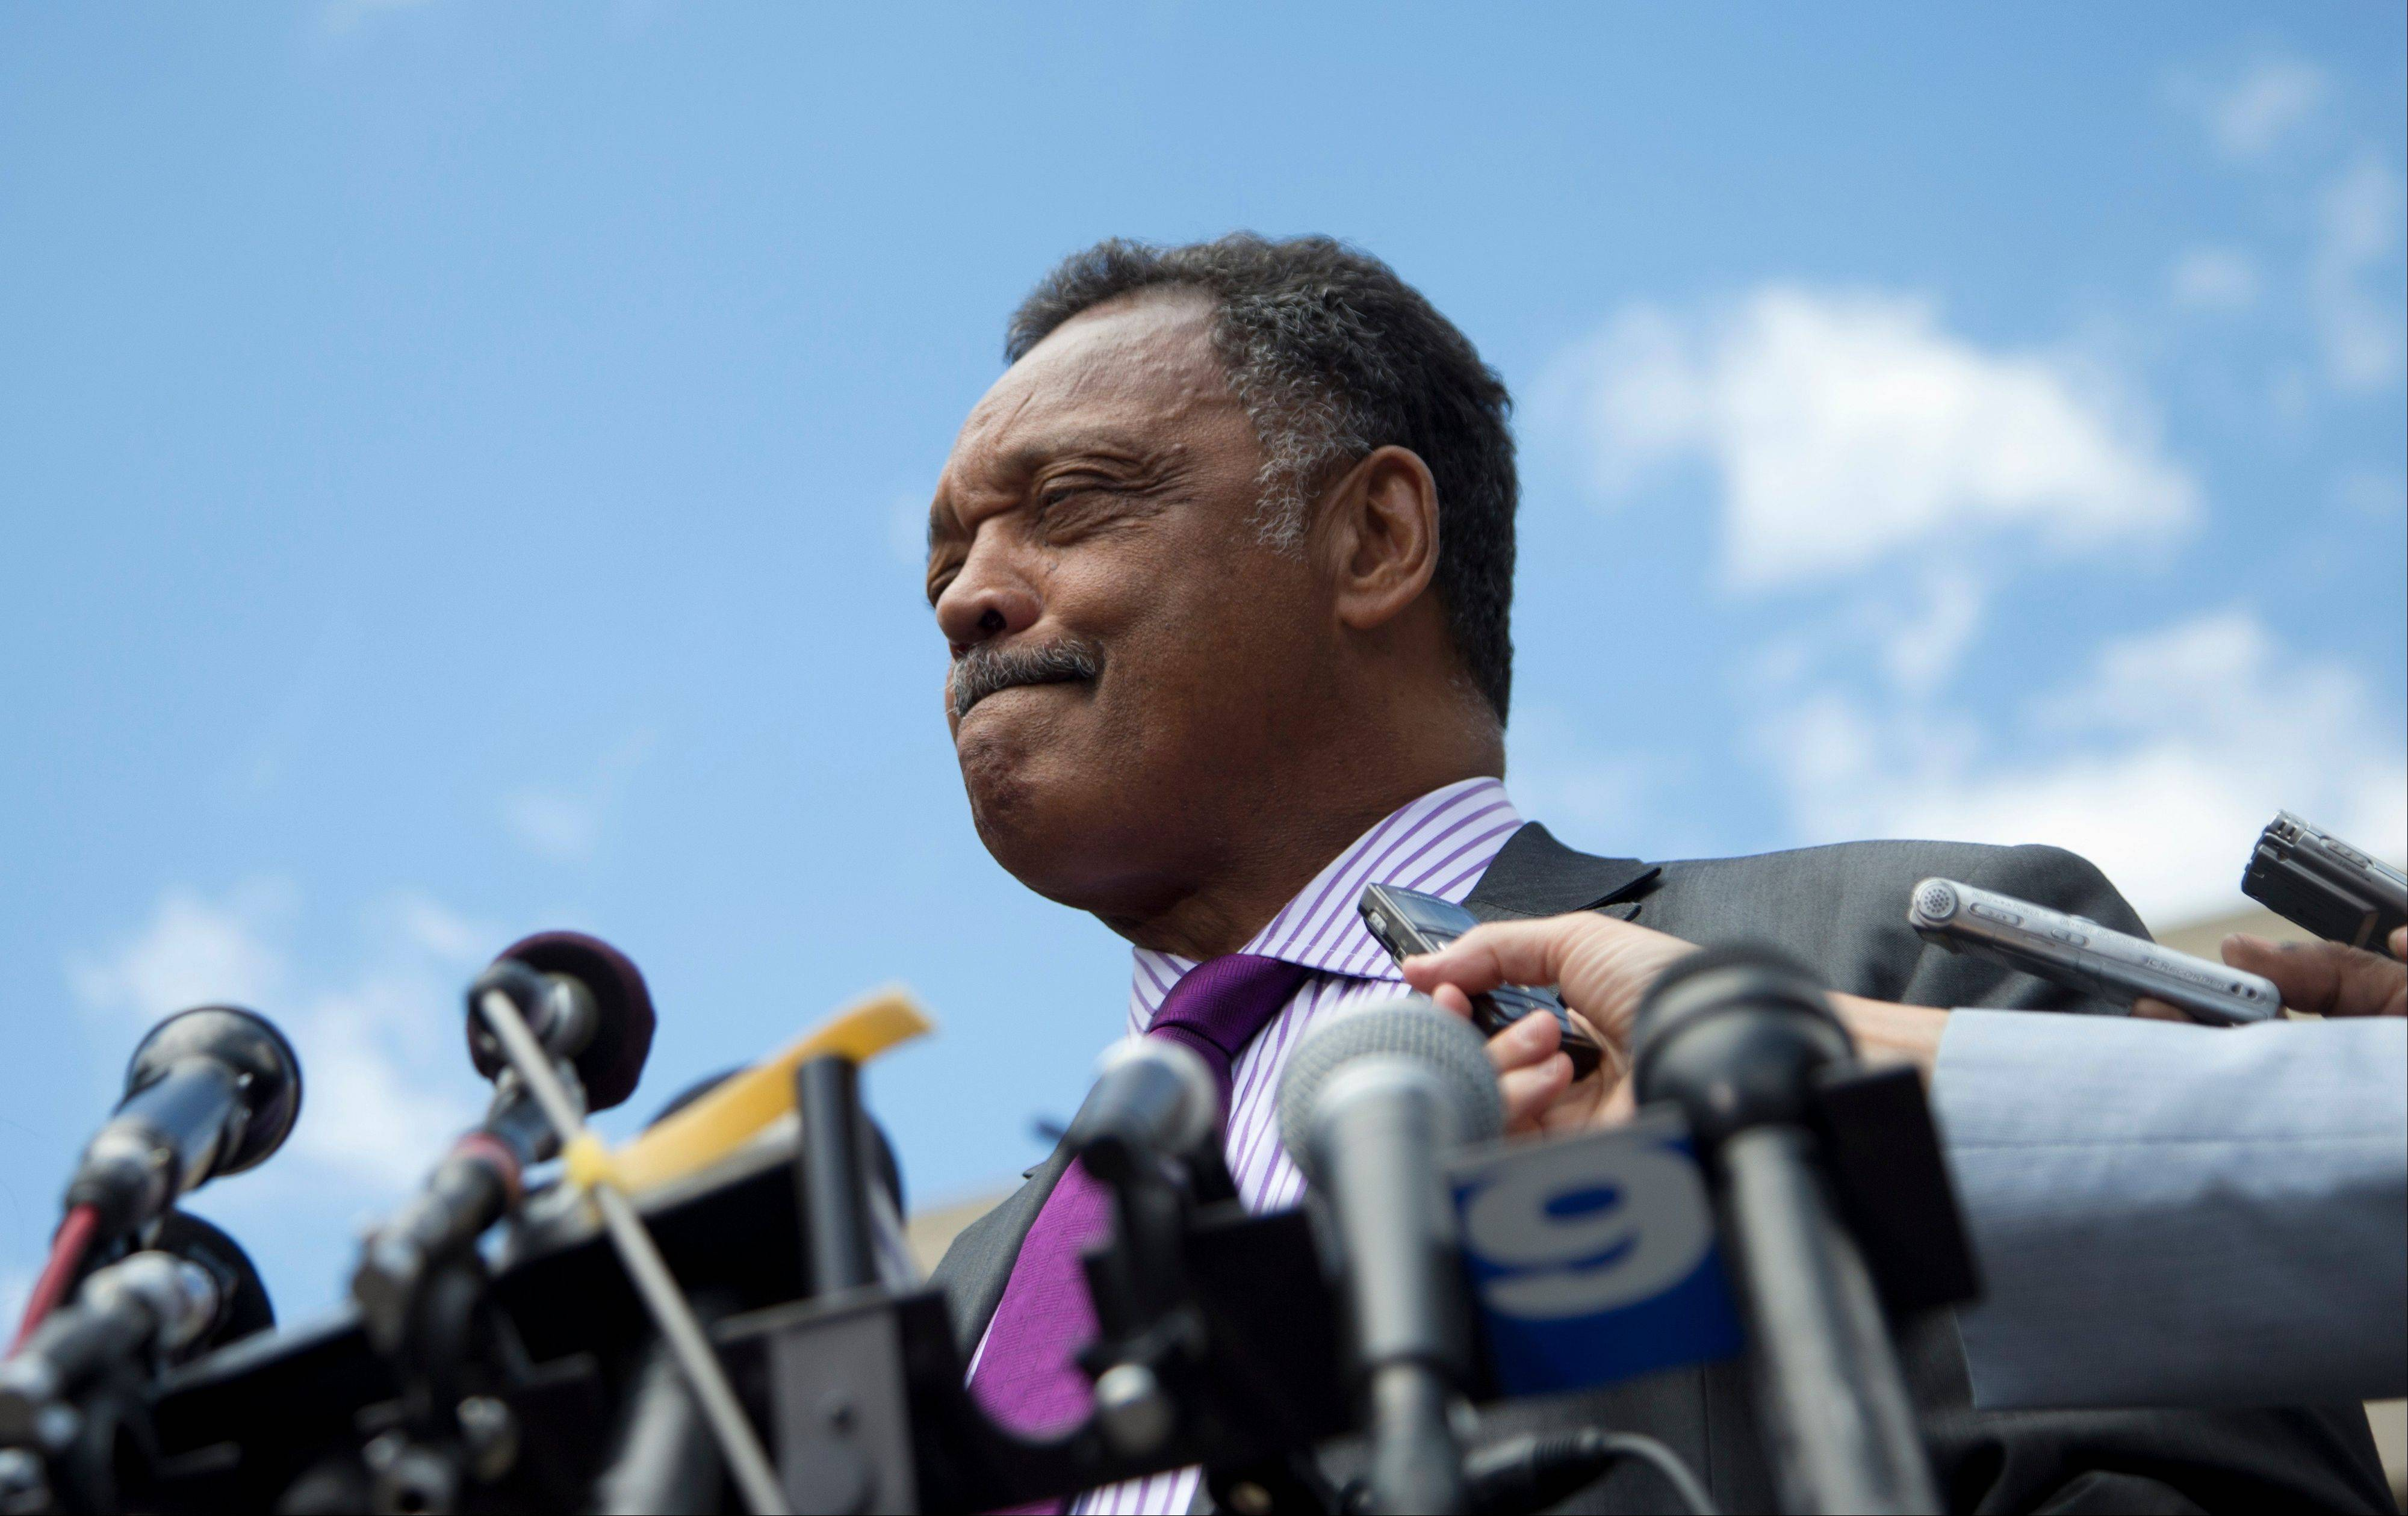 The Rev. Jesse Jackson pauses as he speaks to media Wednesday outside federal court in Washington after his son's sentencing.